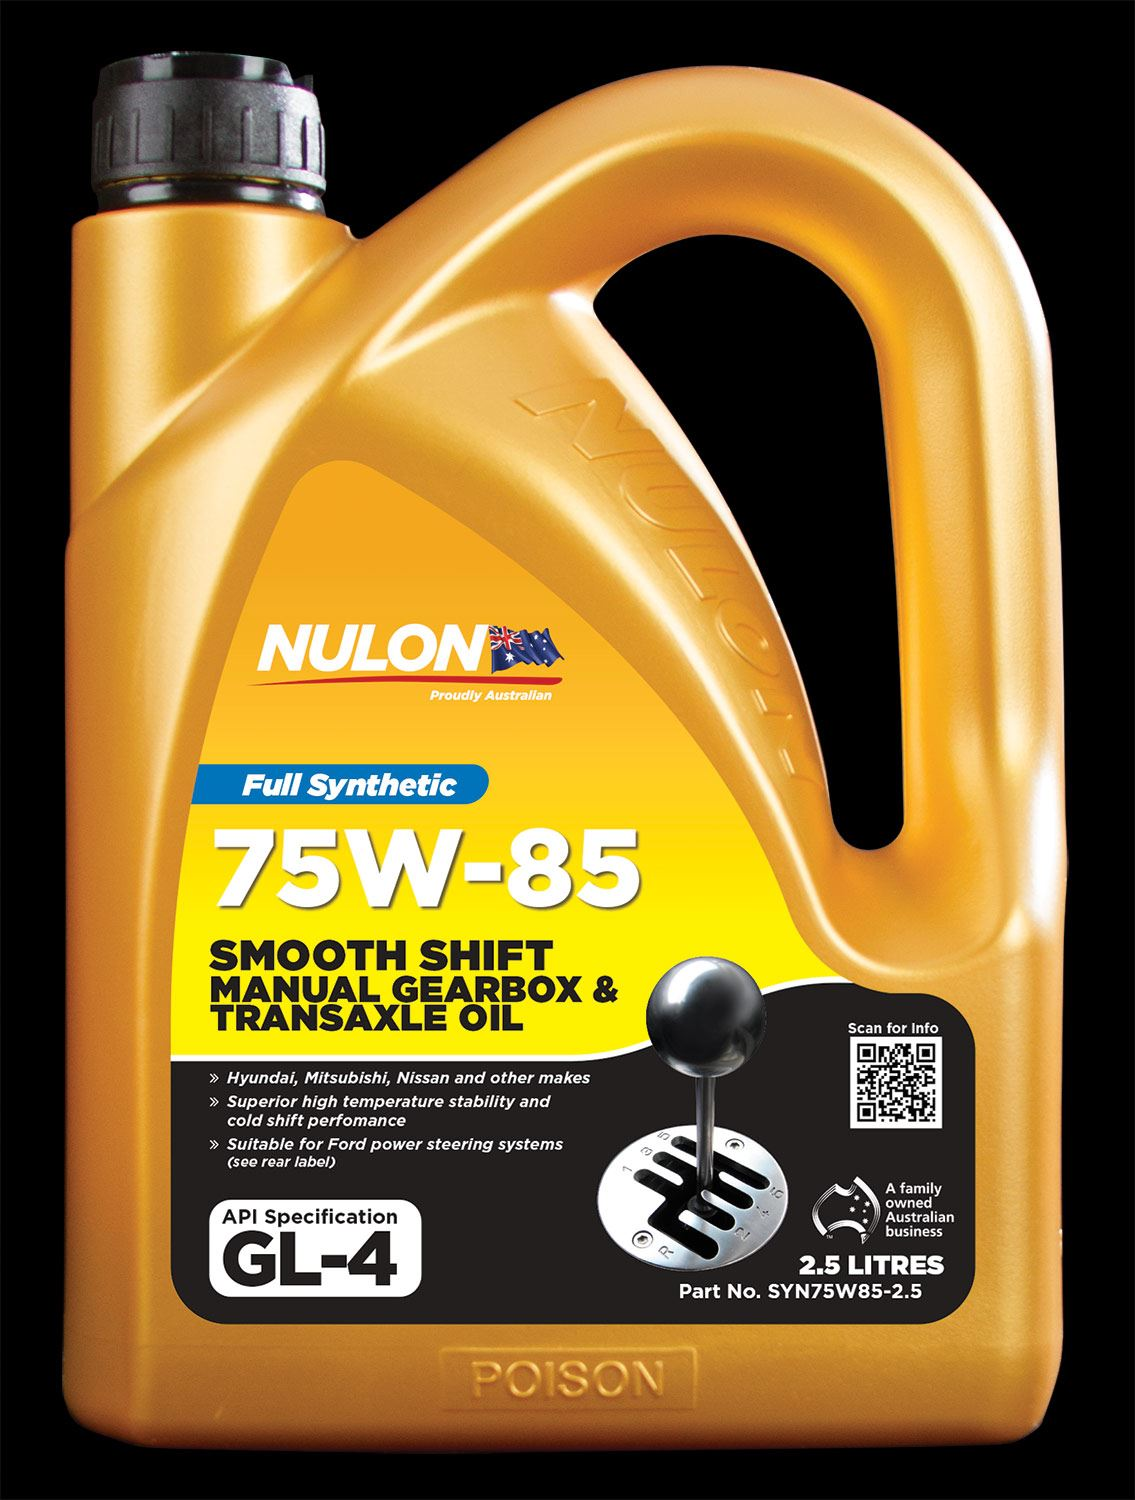 nulon full synthetic smooth shift gear oil 75w85. Black Bedroom Furniture Sets. Home Design Ideas